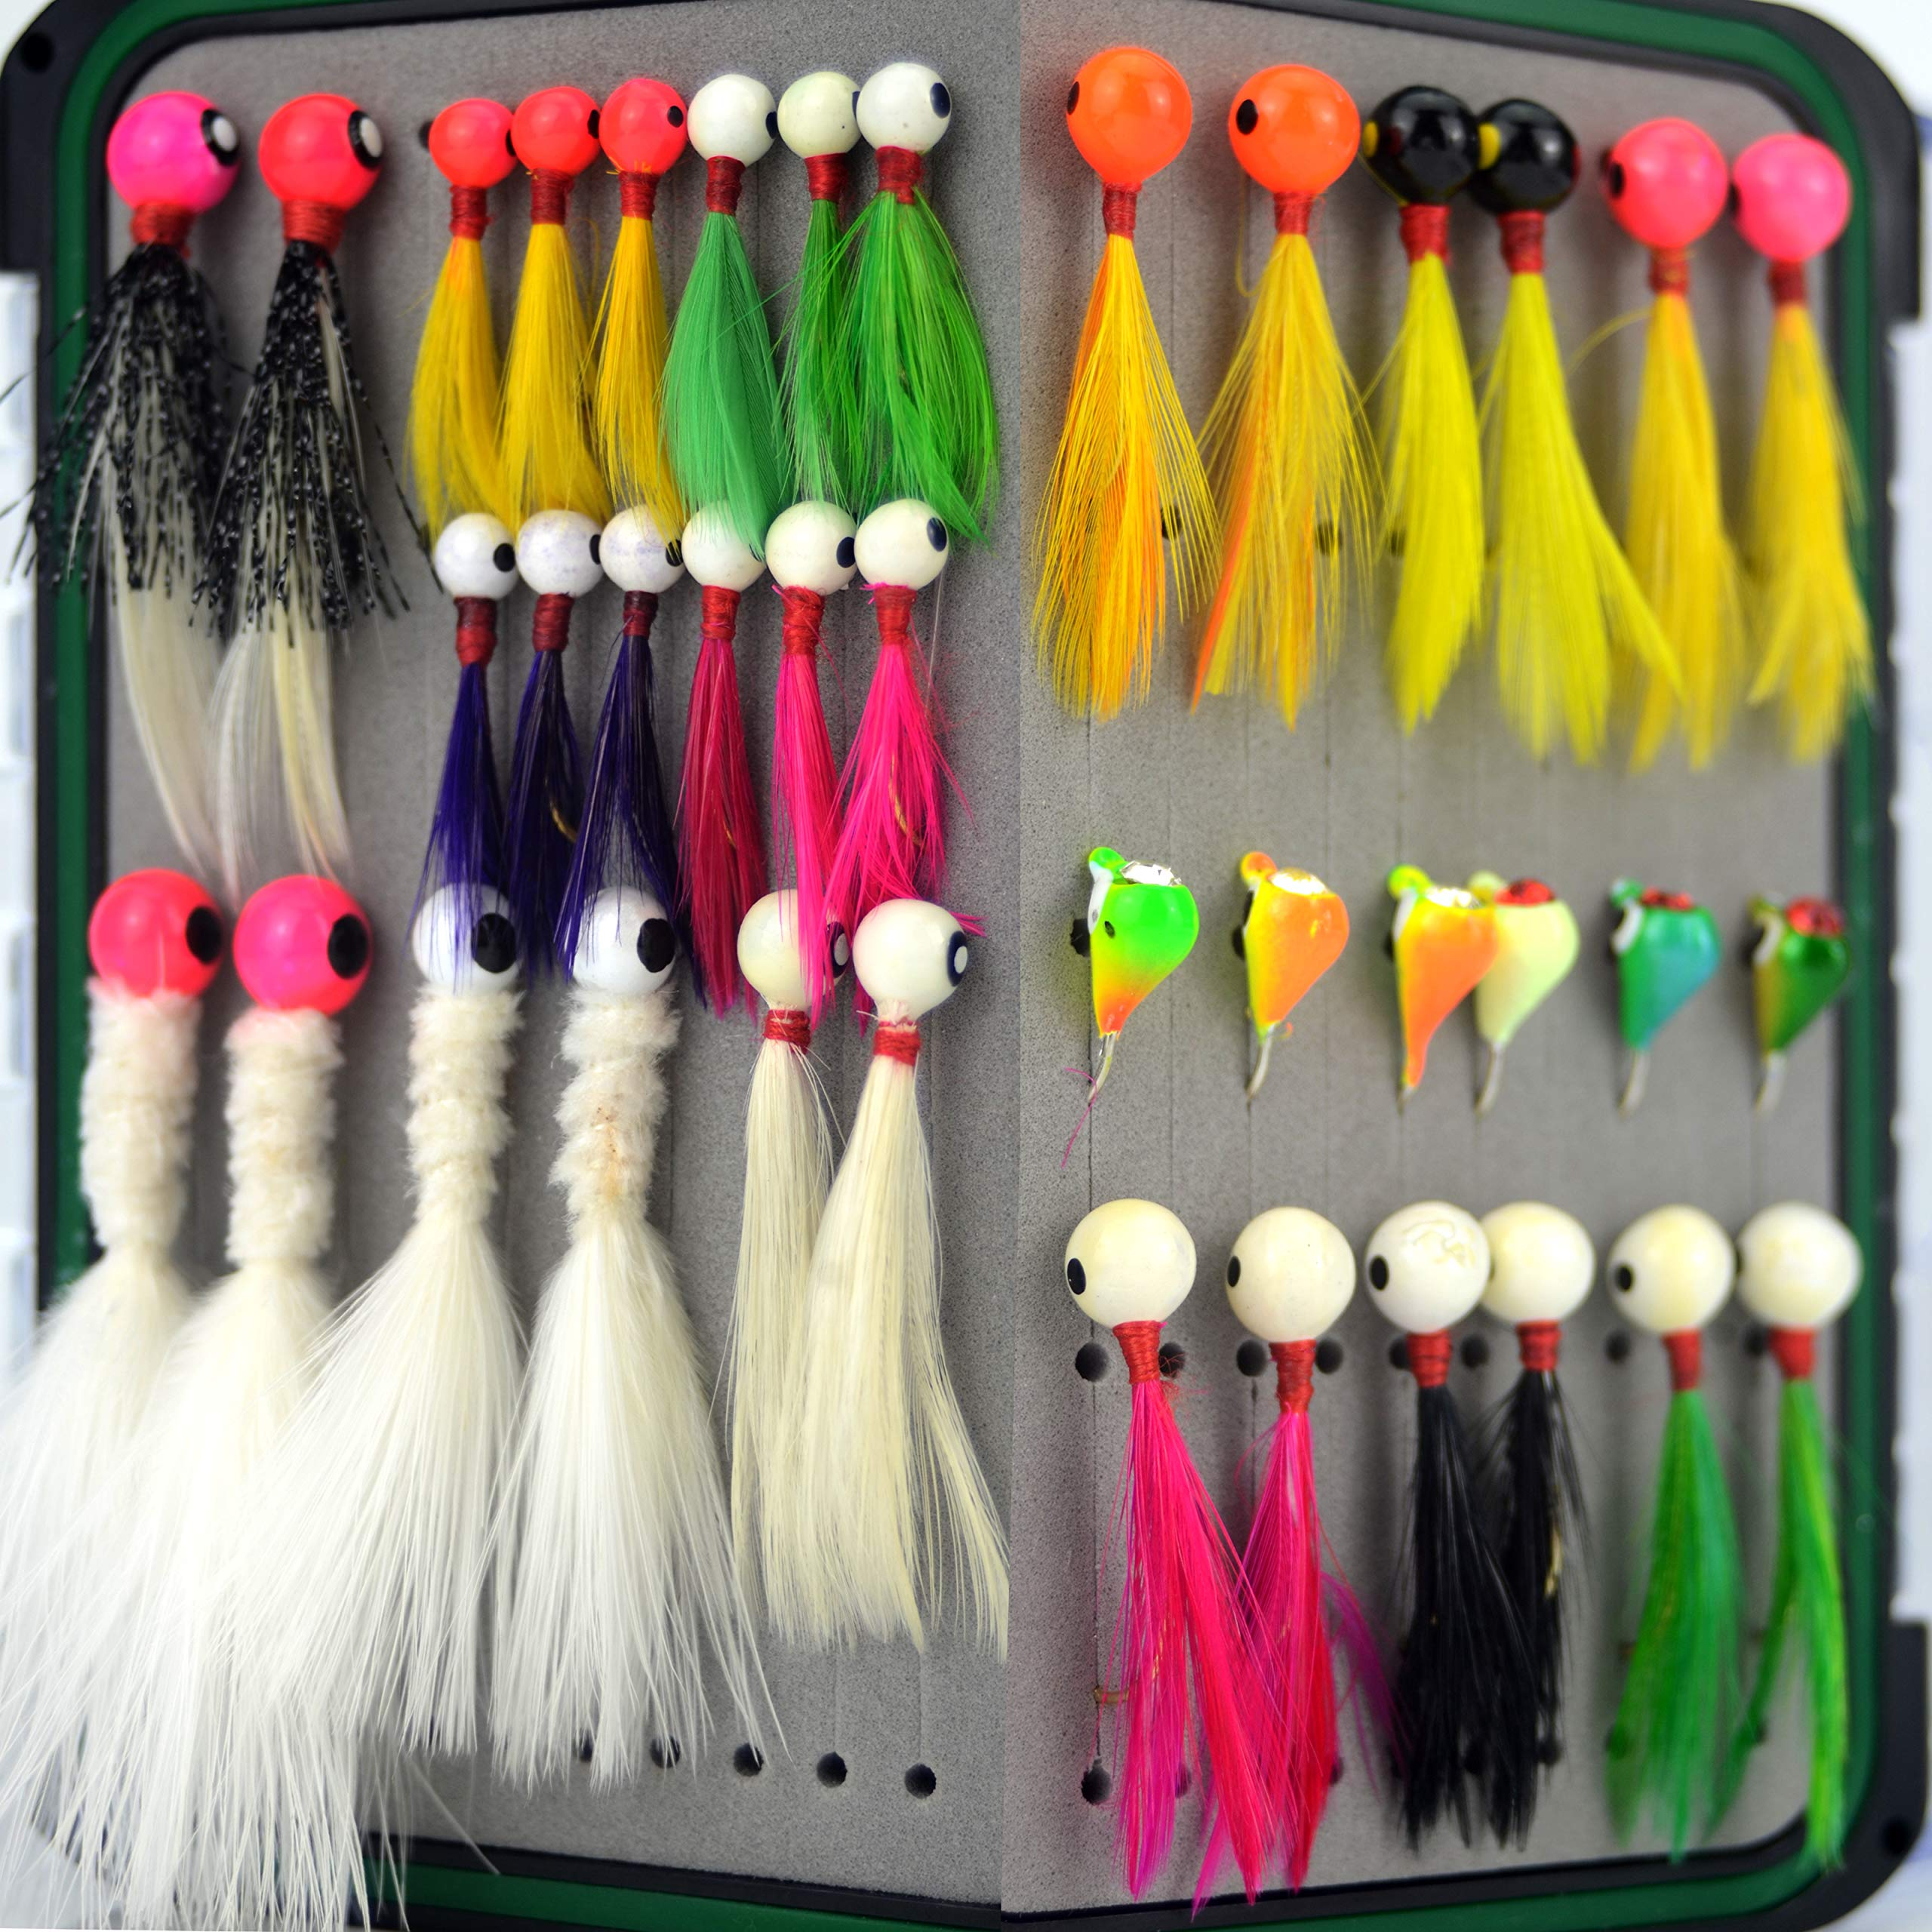 YAZHIDA Little Nipper jig 1/16-1/32oz Hand Tied Marabou Feather jig Fishing Lure kit for Panfish Sunfish Bluegil Perch Walleye Bass by YAZHIDA